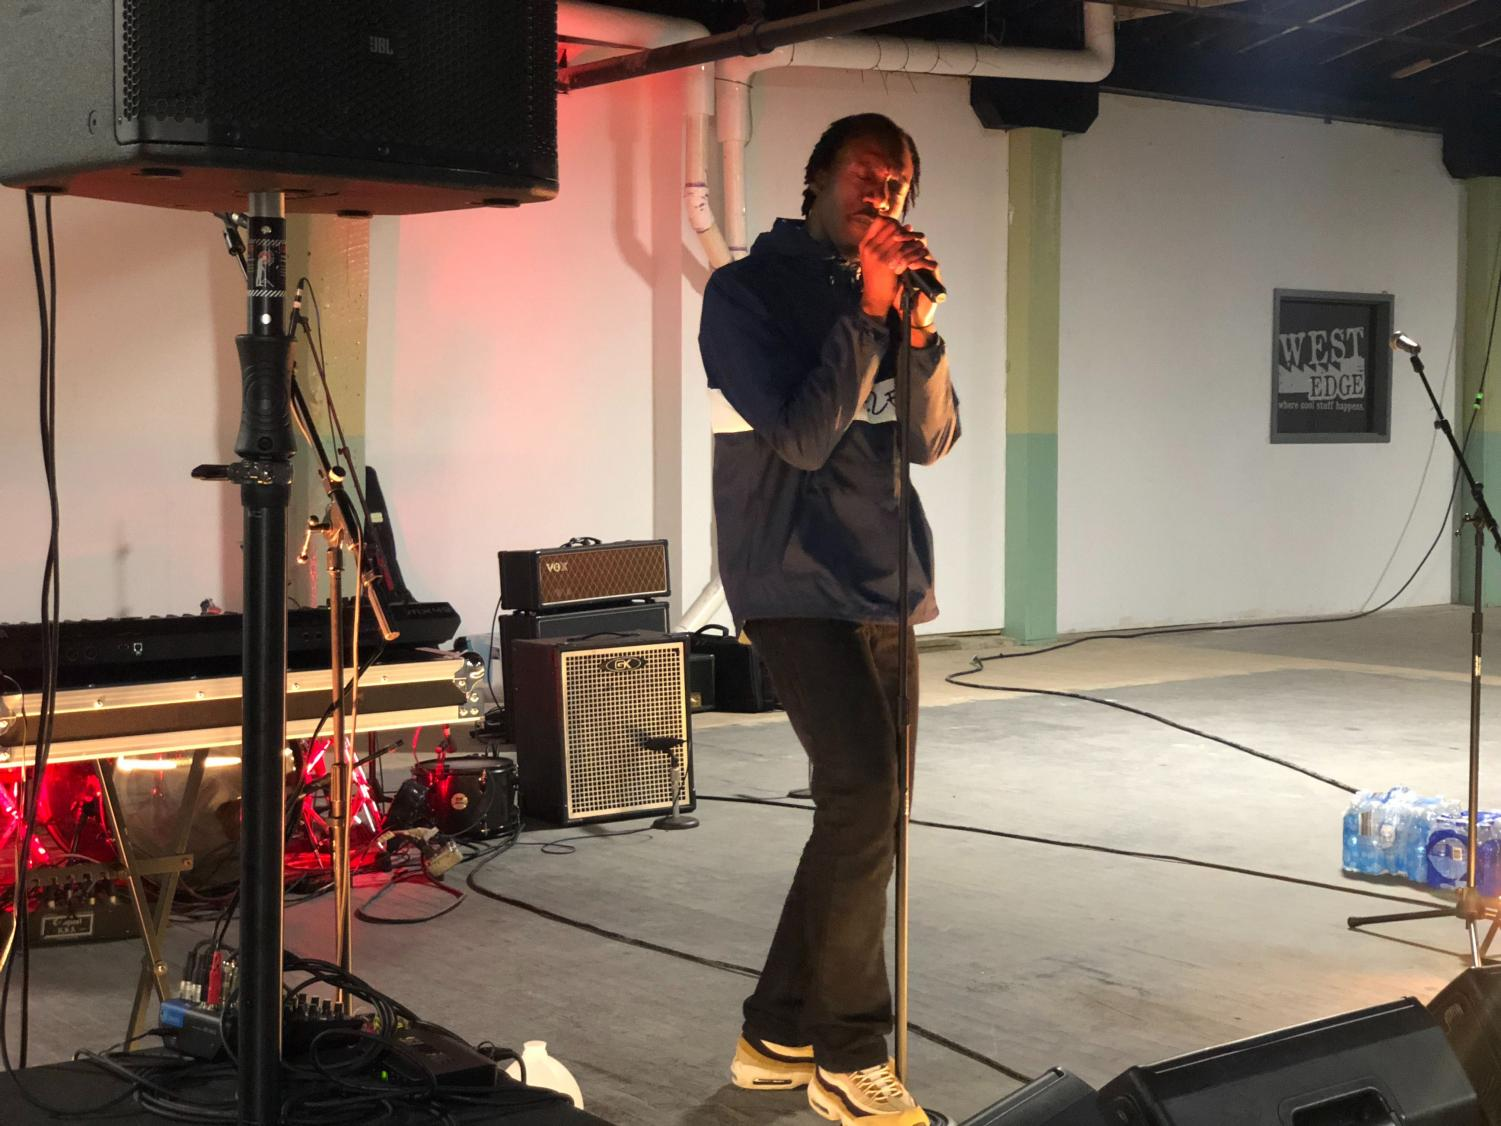 Local rapper Shelem performs during the Localization pop-up show at the West Edge Factory Oct. 18.